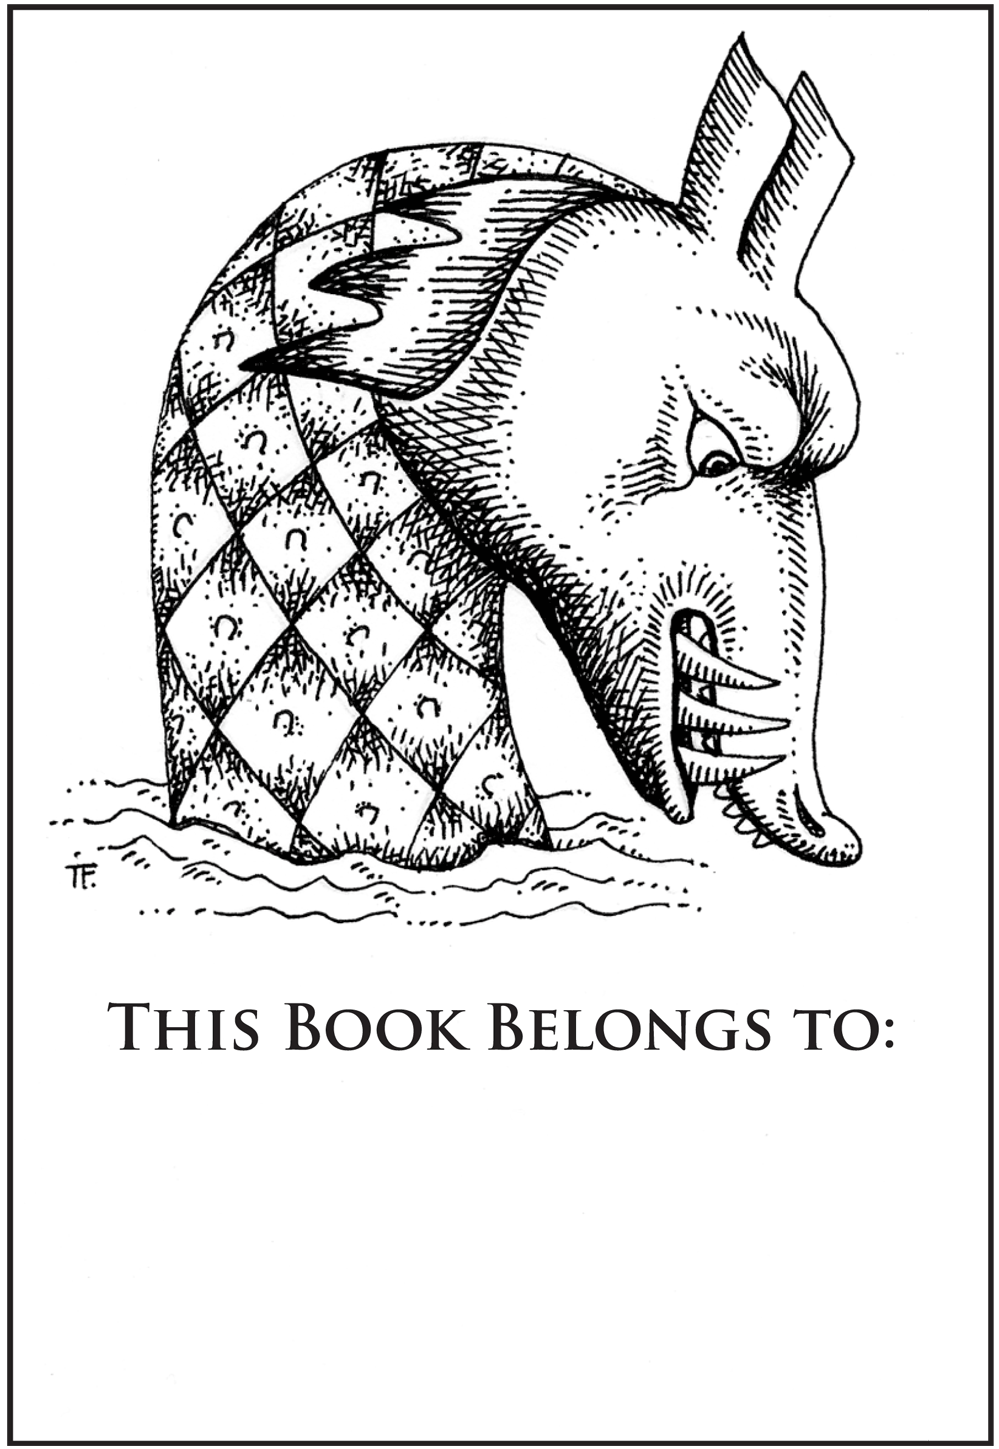 Sea Monster Bookplate